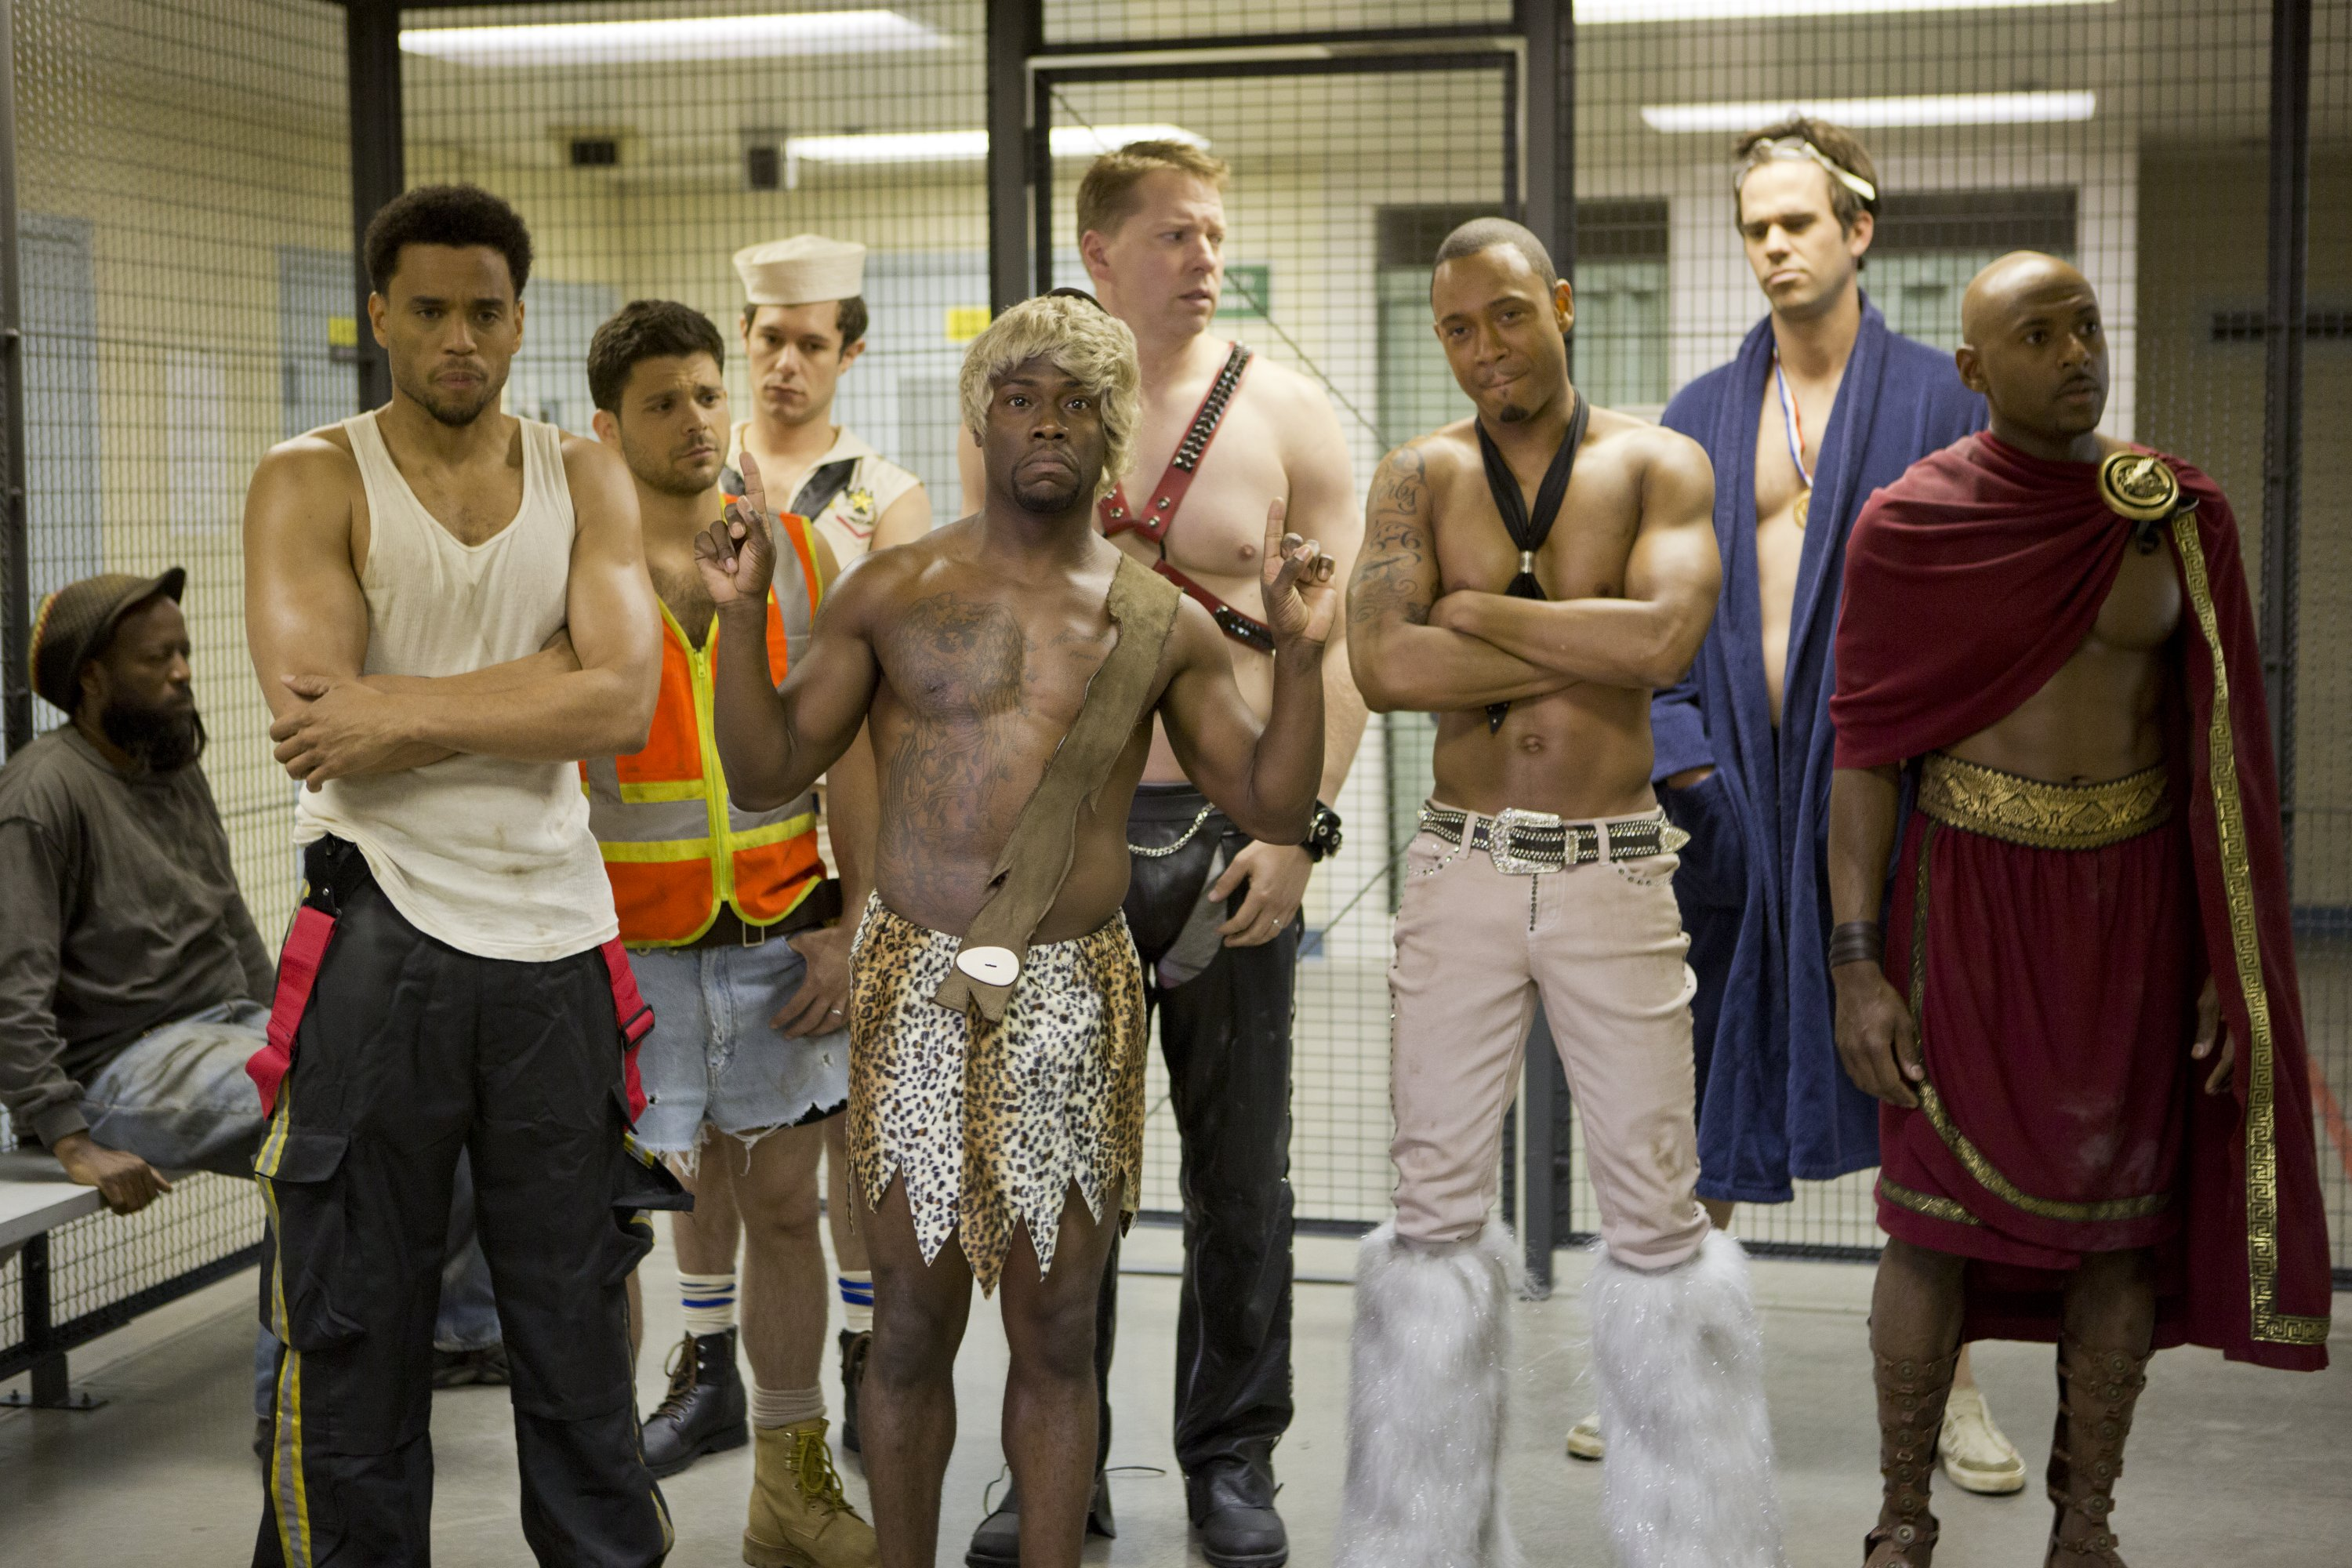 "Their antics at The Hustler Club land Dominic (Michael Ealy), Jeremy (Jerry Ferrara), Isaac (Adrian Brody), Cedric (Kevin Hart),  Bennett (Gary Owen), Michael (Terrence J), Terrell (David Walton) and Zeke (Romany Malco) in trouble in ""Think LIke a Man Too."" (Photo: Sony Pictures)"